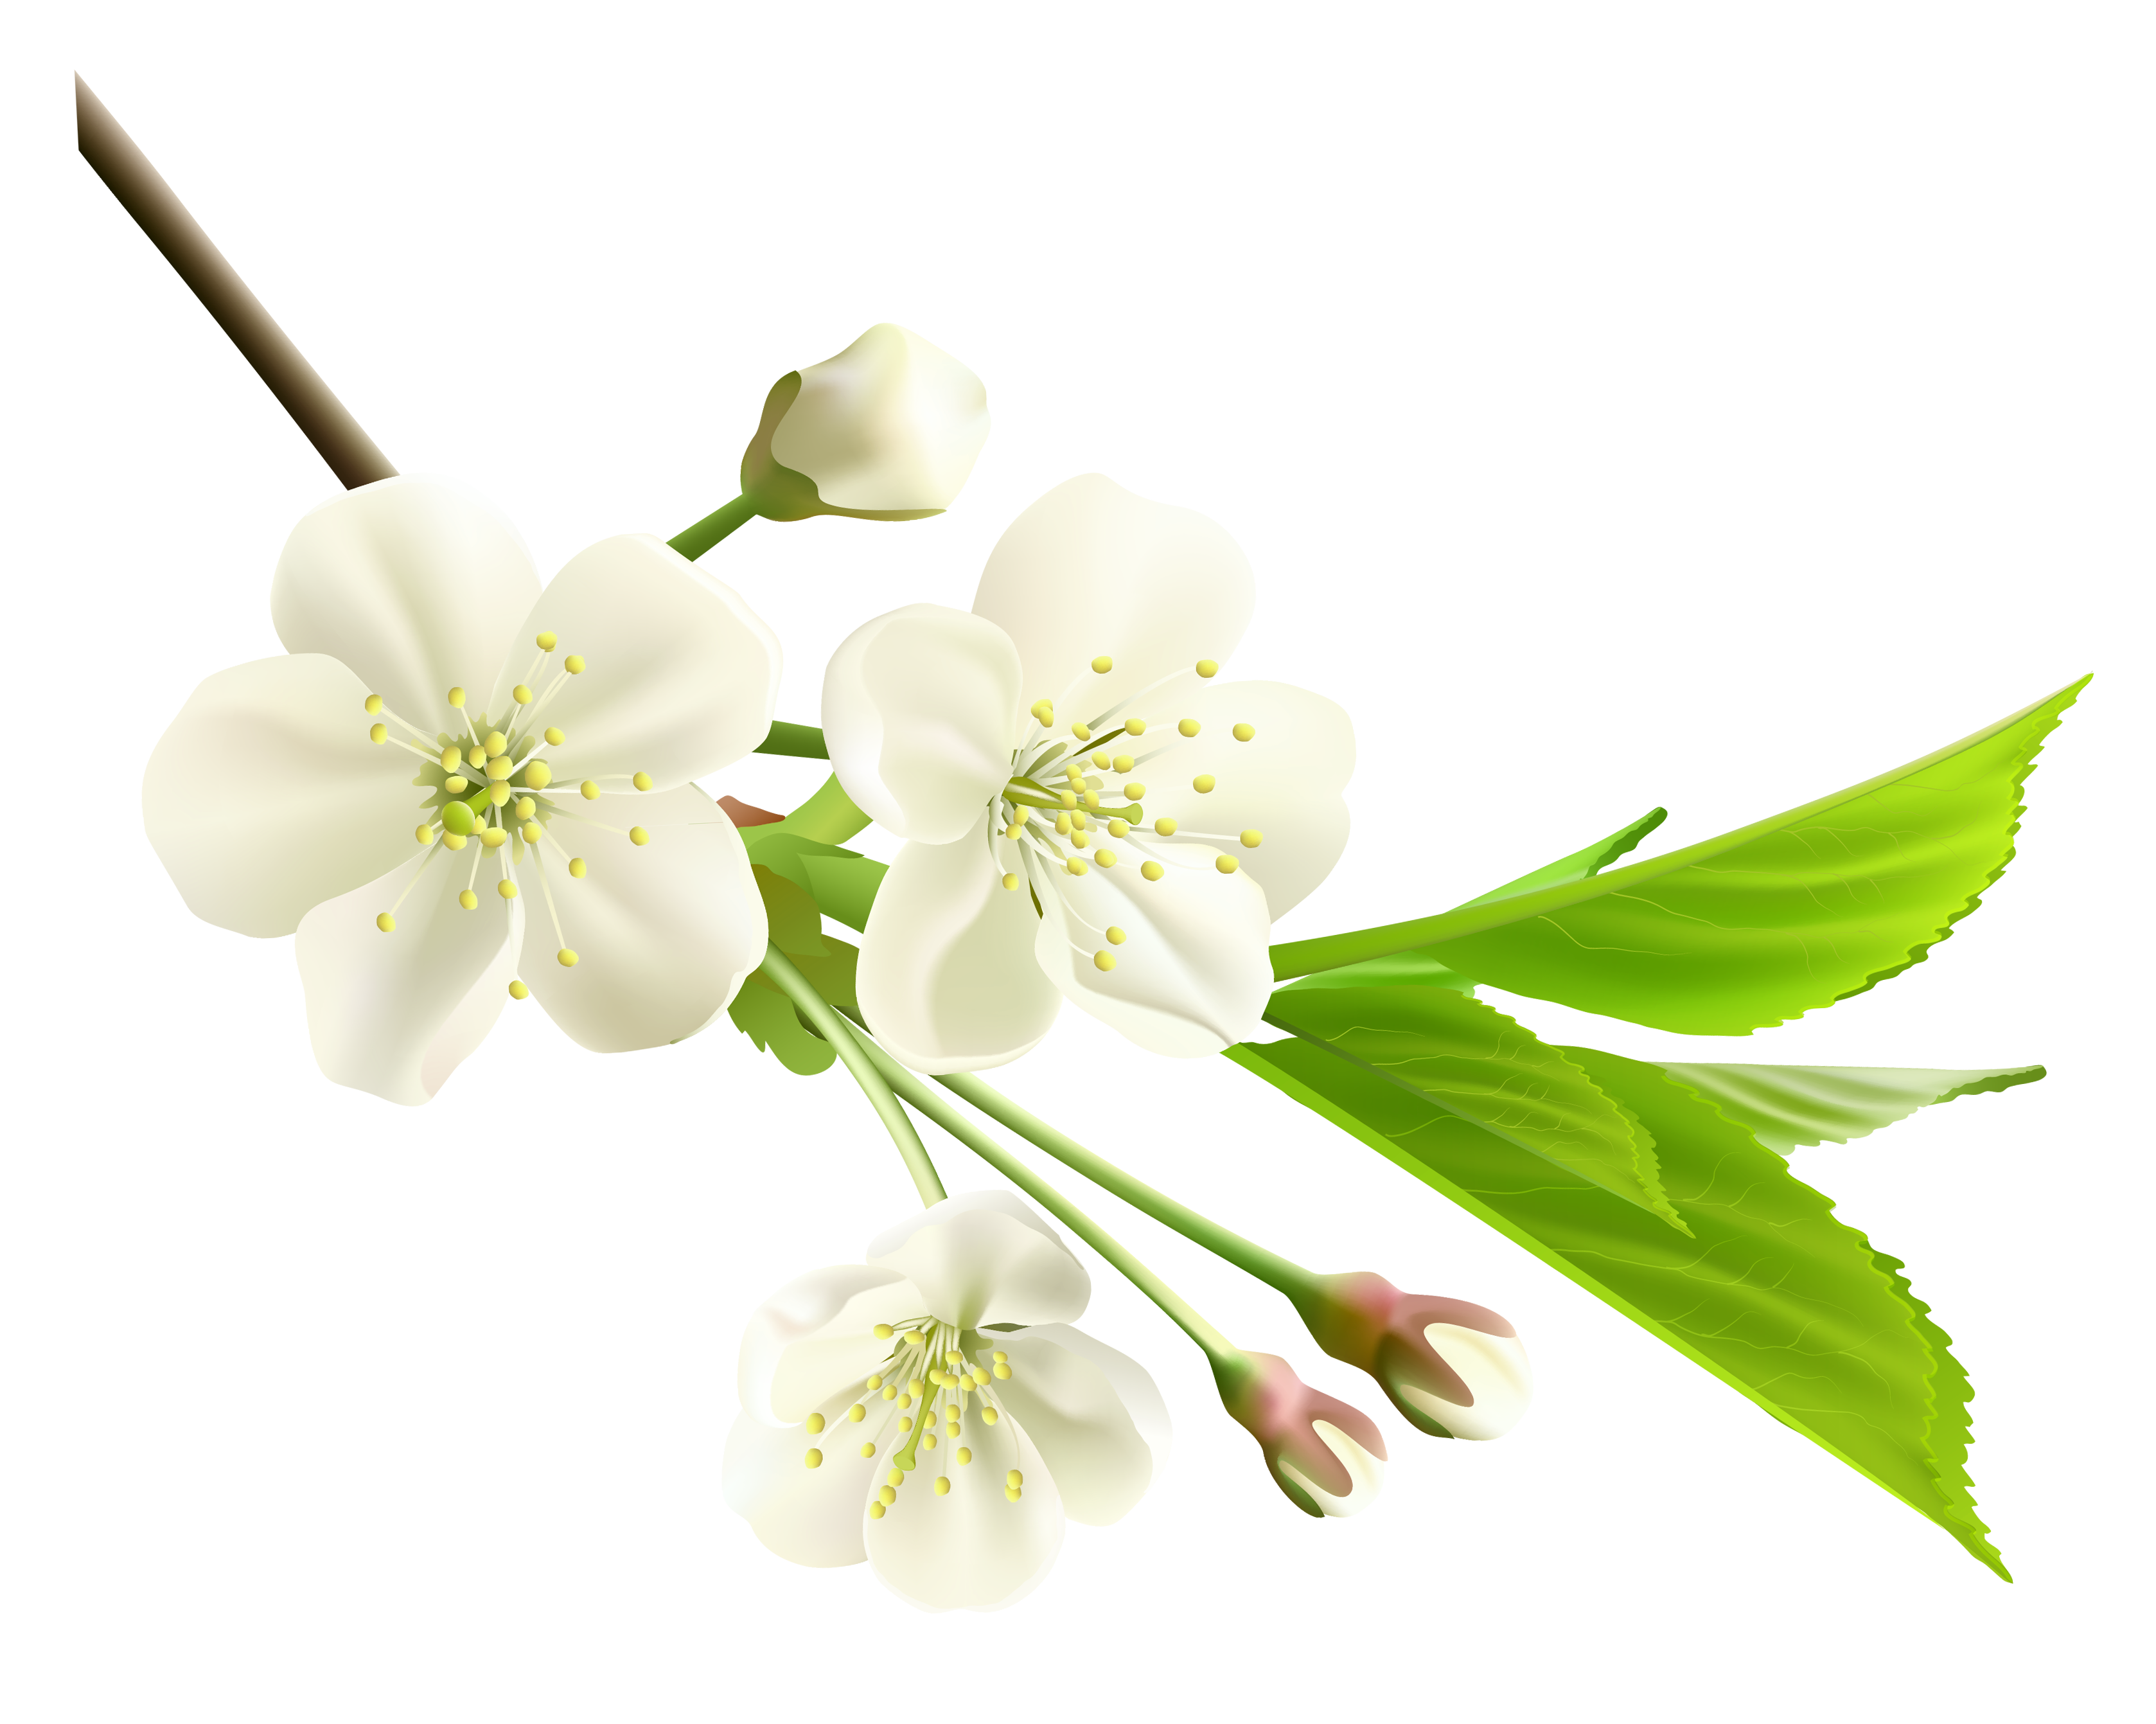 White flower png. Spring branch with tree